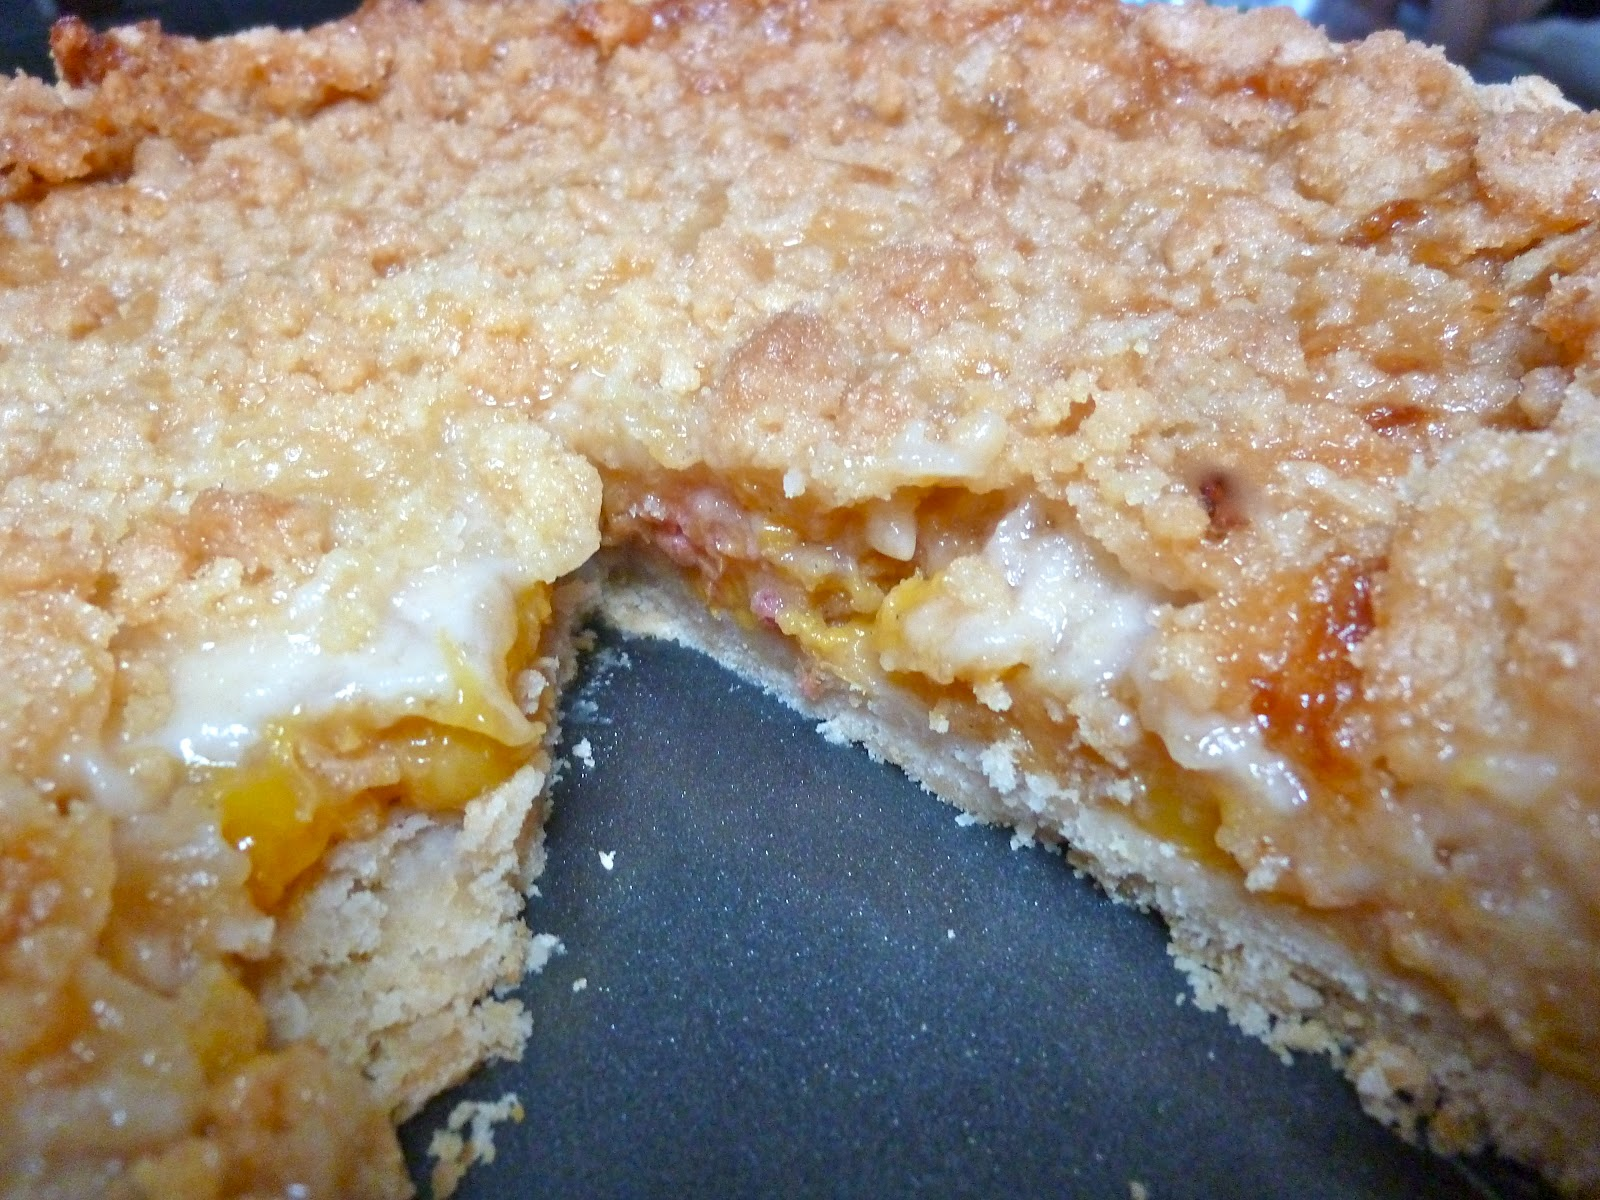 Diary of a Mad Hausfrau: Salted Caramel Peach Crumble Pie